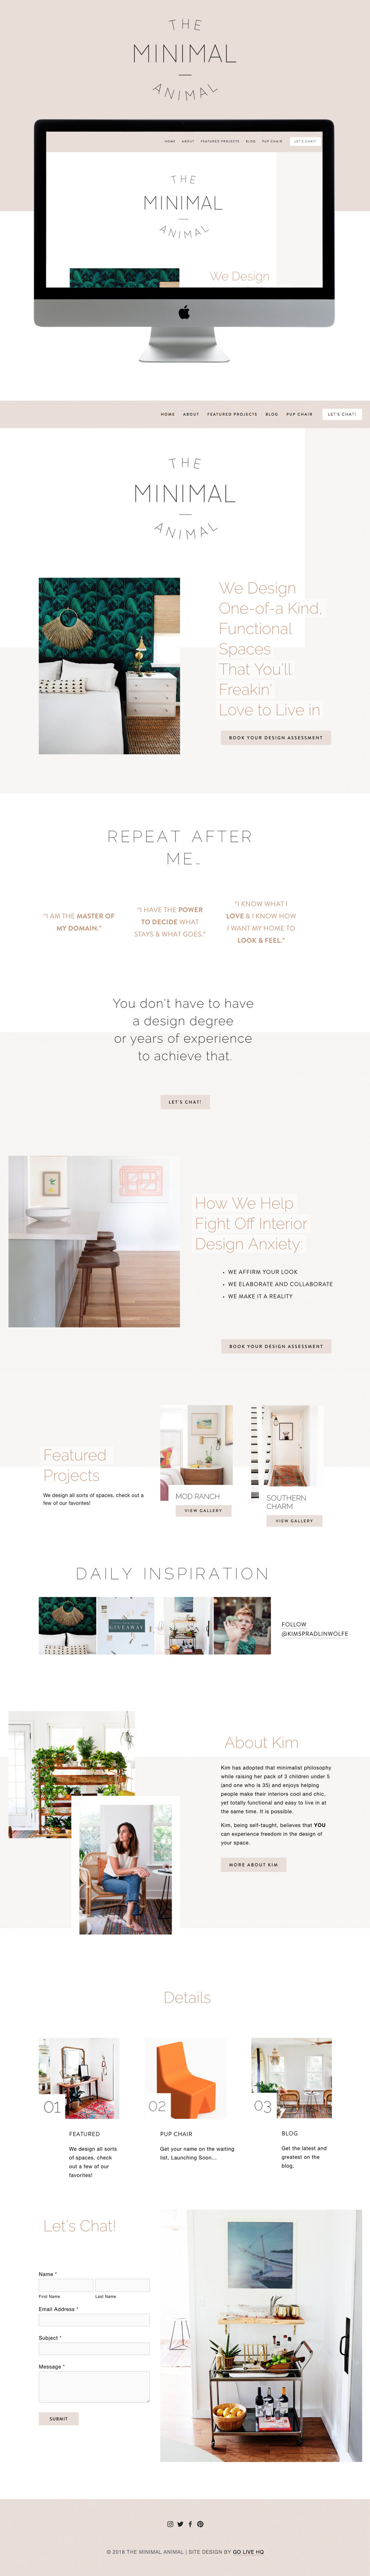 Unique, Fun, Minimal Website Design for Interior Designer | Go Live HQ